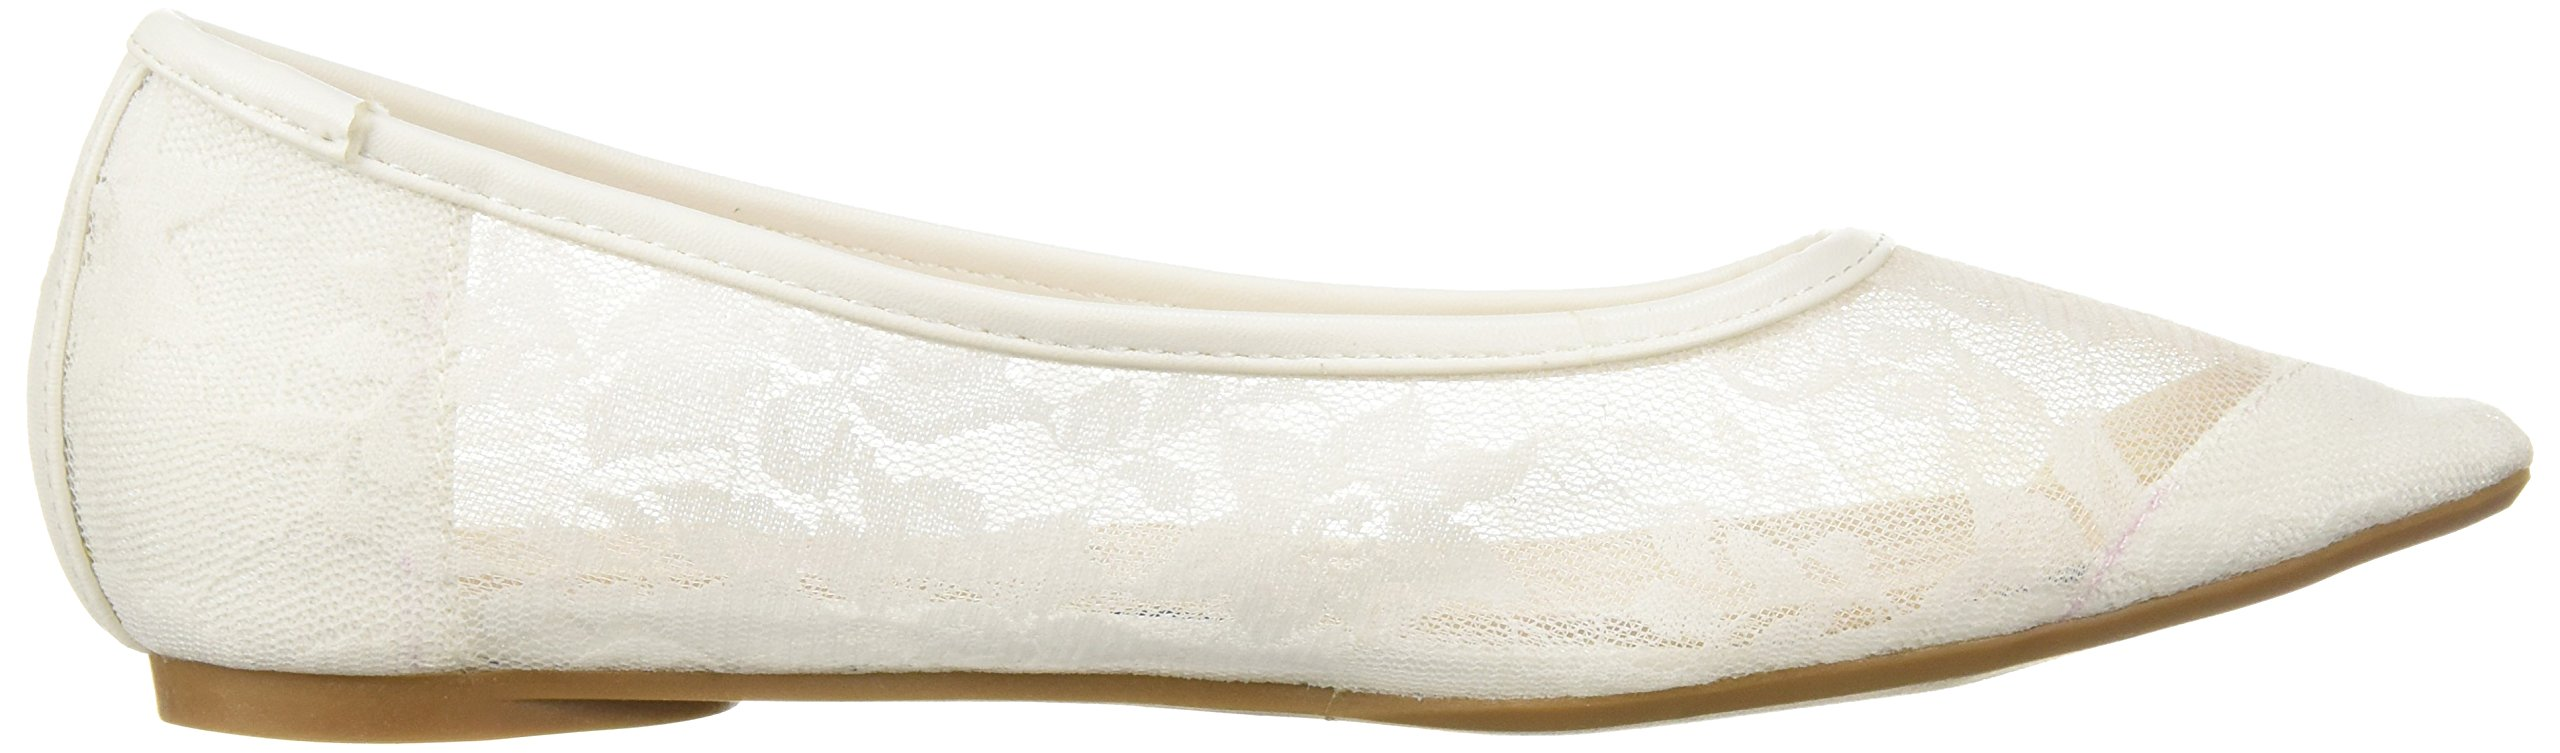 Penny Loves Kenny Women's Knot FL Ballet Flat, White Lace, 9 Medium US by Penny Loves Kenny (Image #6)